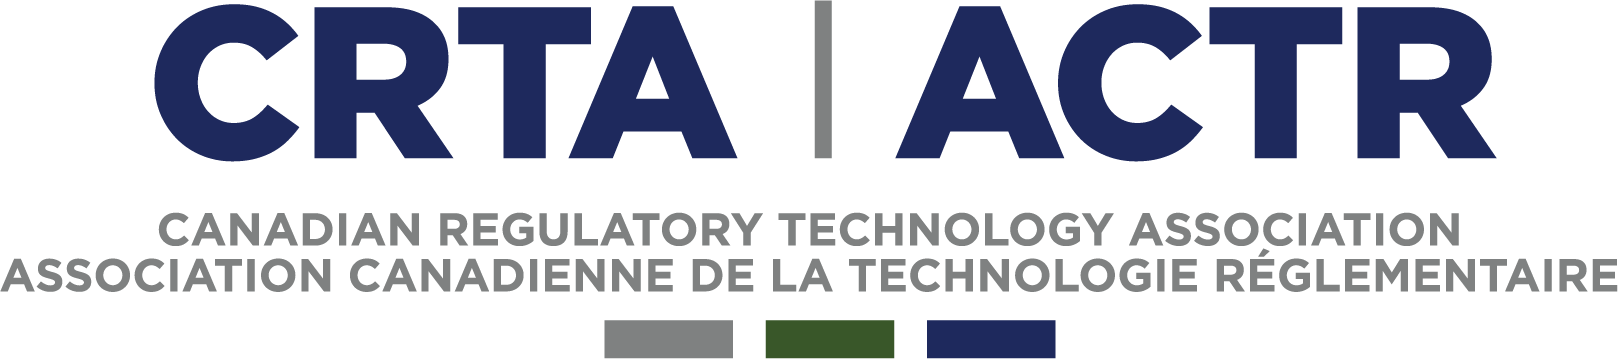 Canadian Regulatory Technology Association logo